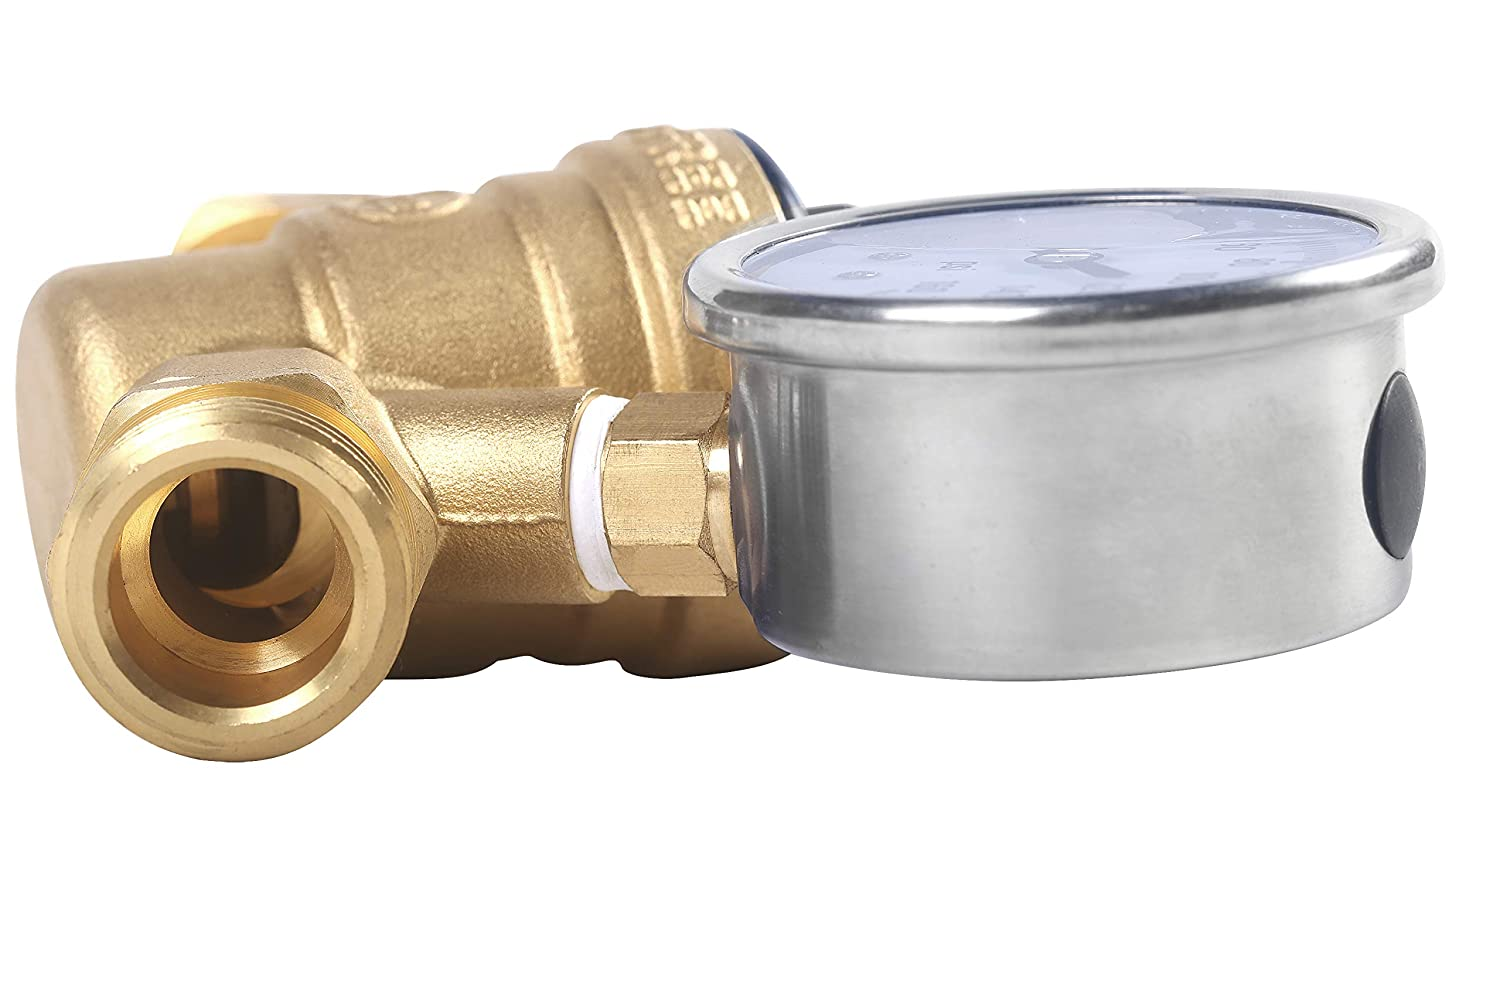 AECOJOY Water Pressure Regulator Brass Lead Free Adjustable Plumbing with 160 PSI Guage NH Thread for RV